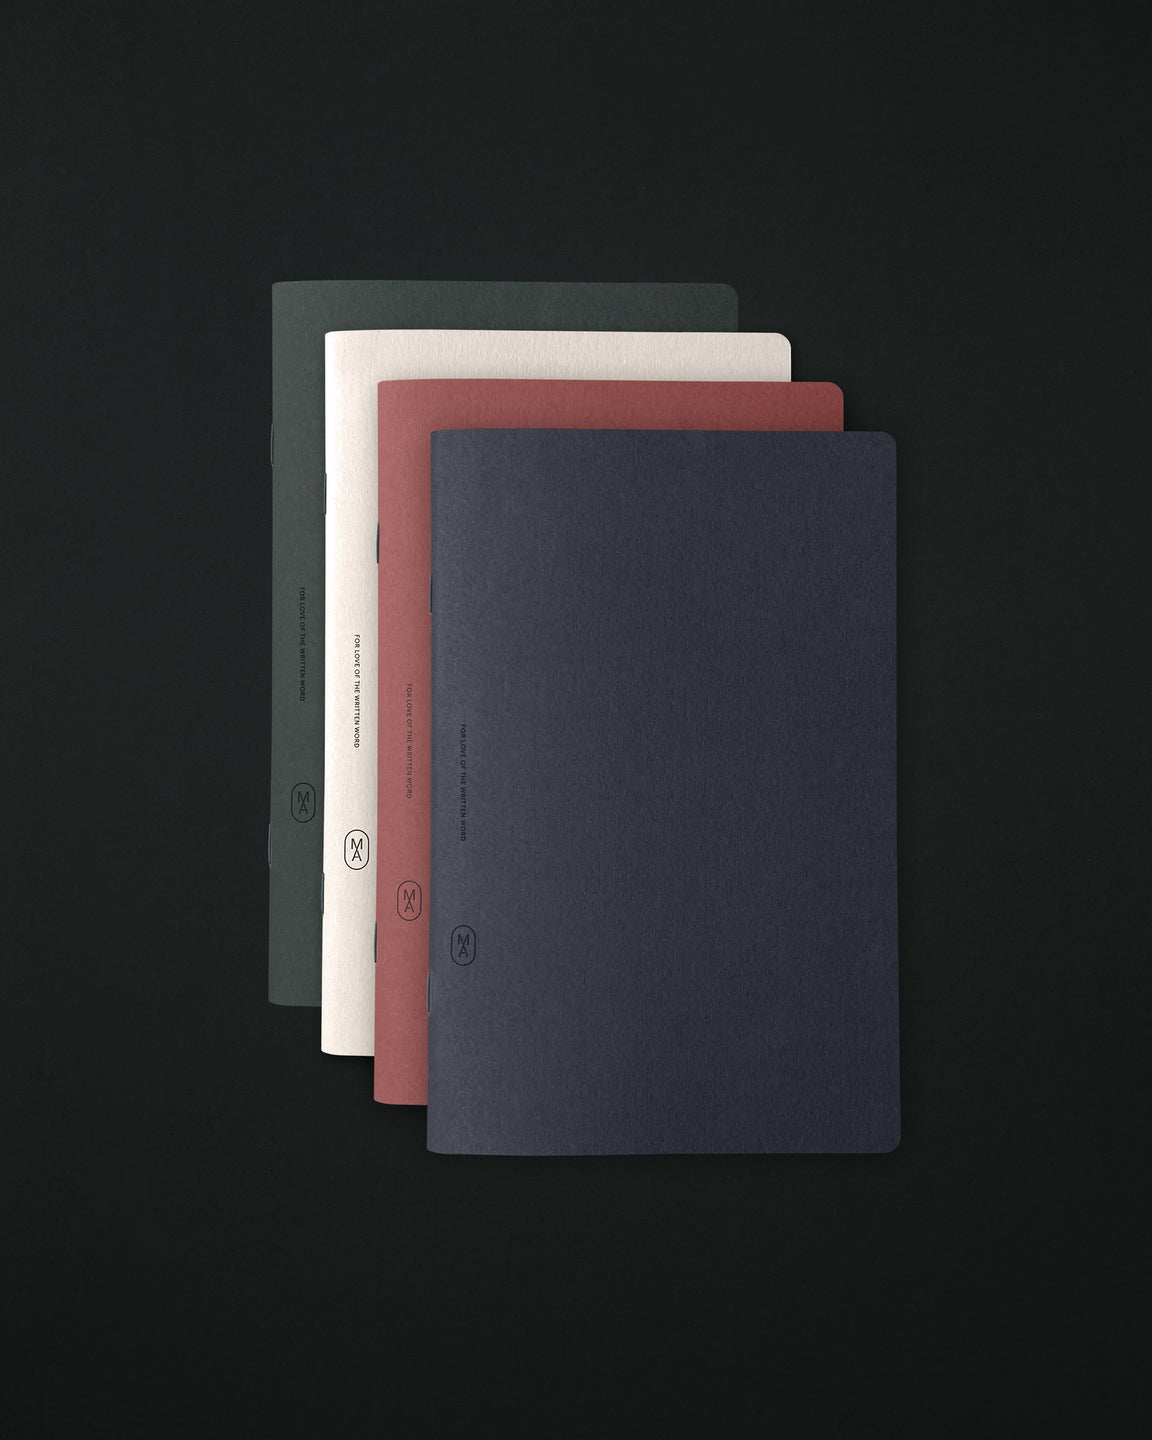 Cahier Notebook 4-Pack - Cahier Notebook 4-Pack